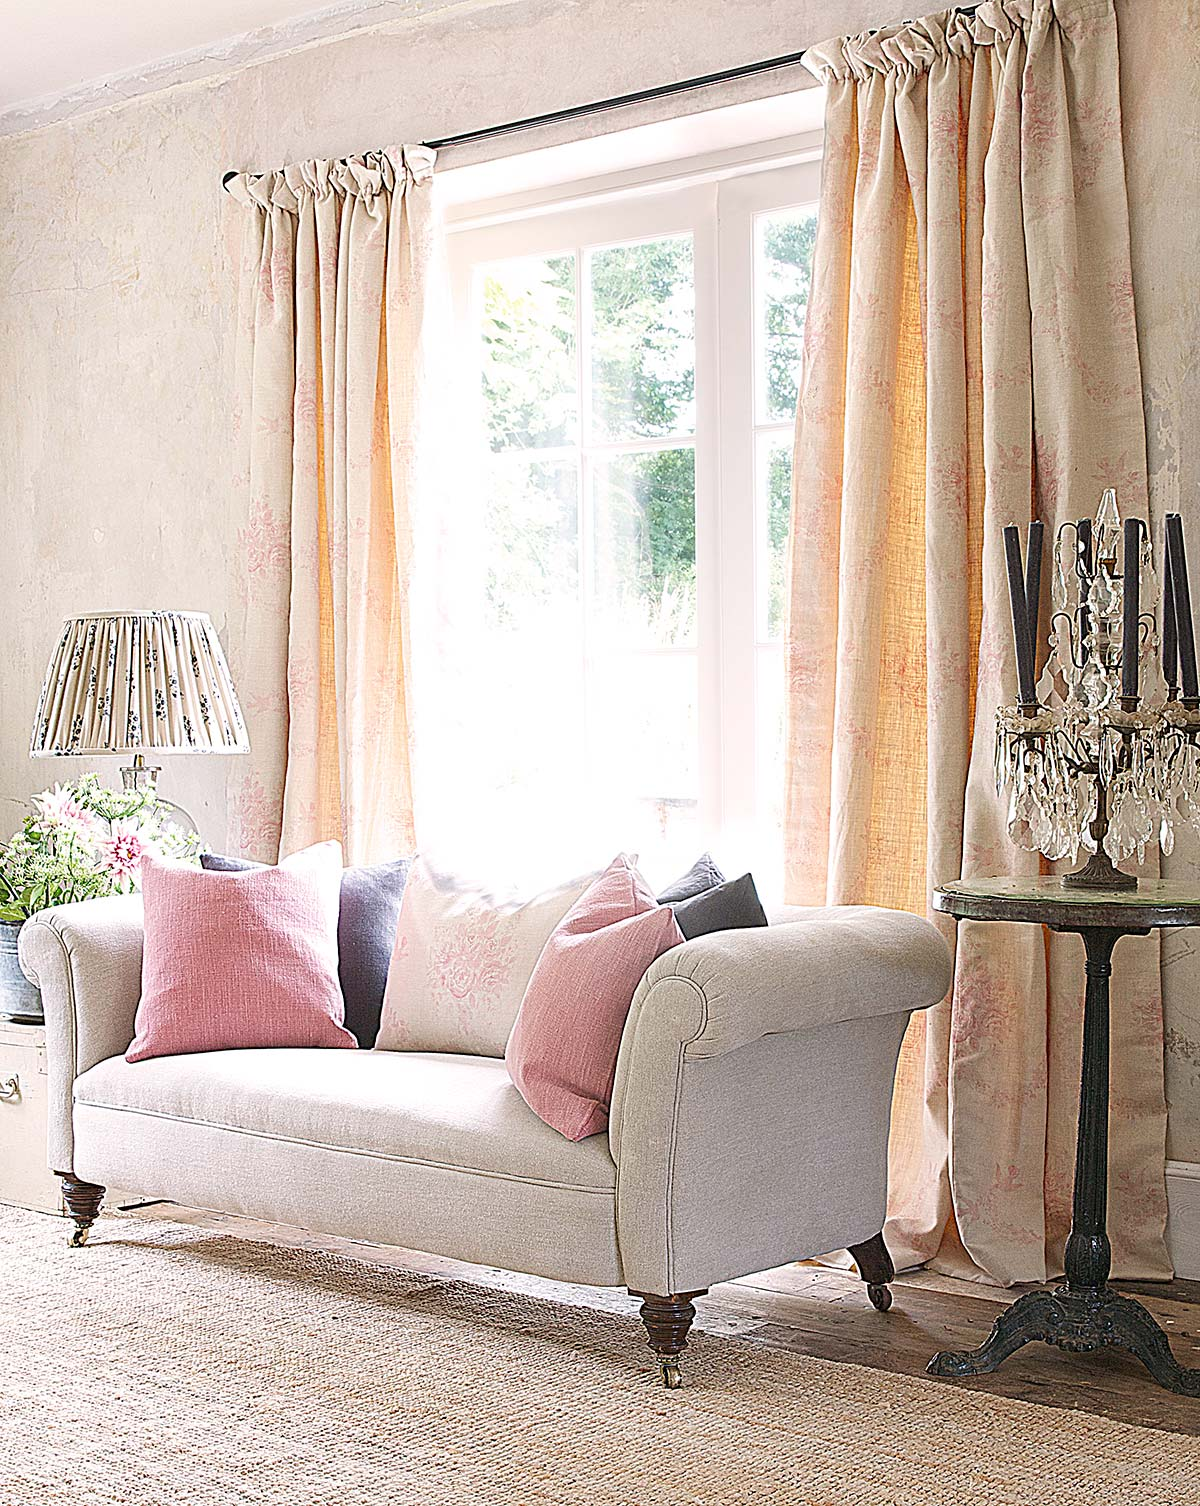 Pink-Sophia-Curtains-&-Pebble-Sofa